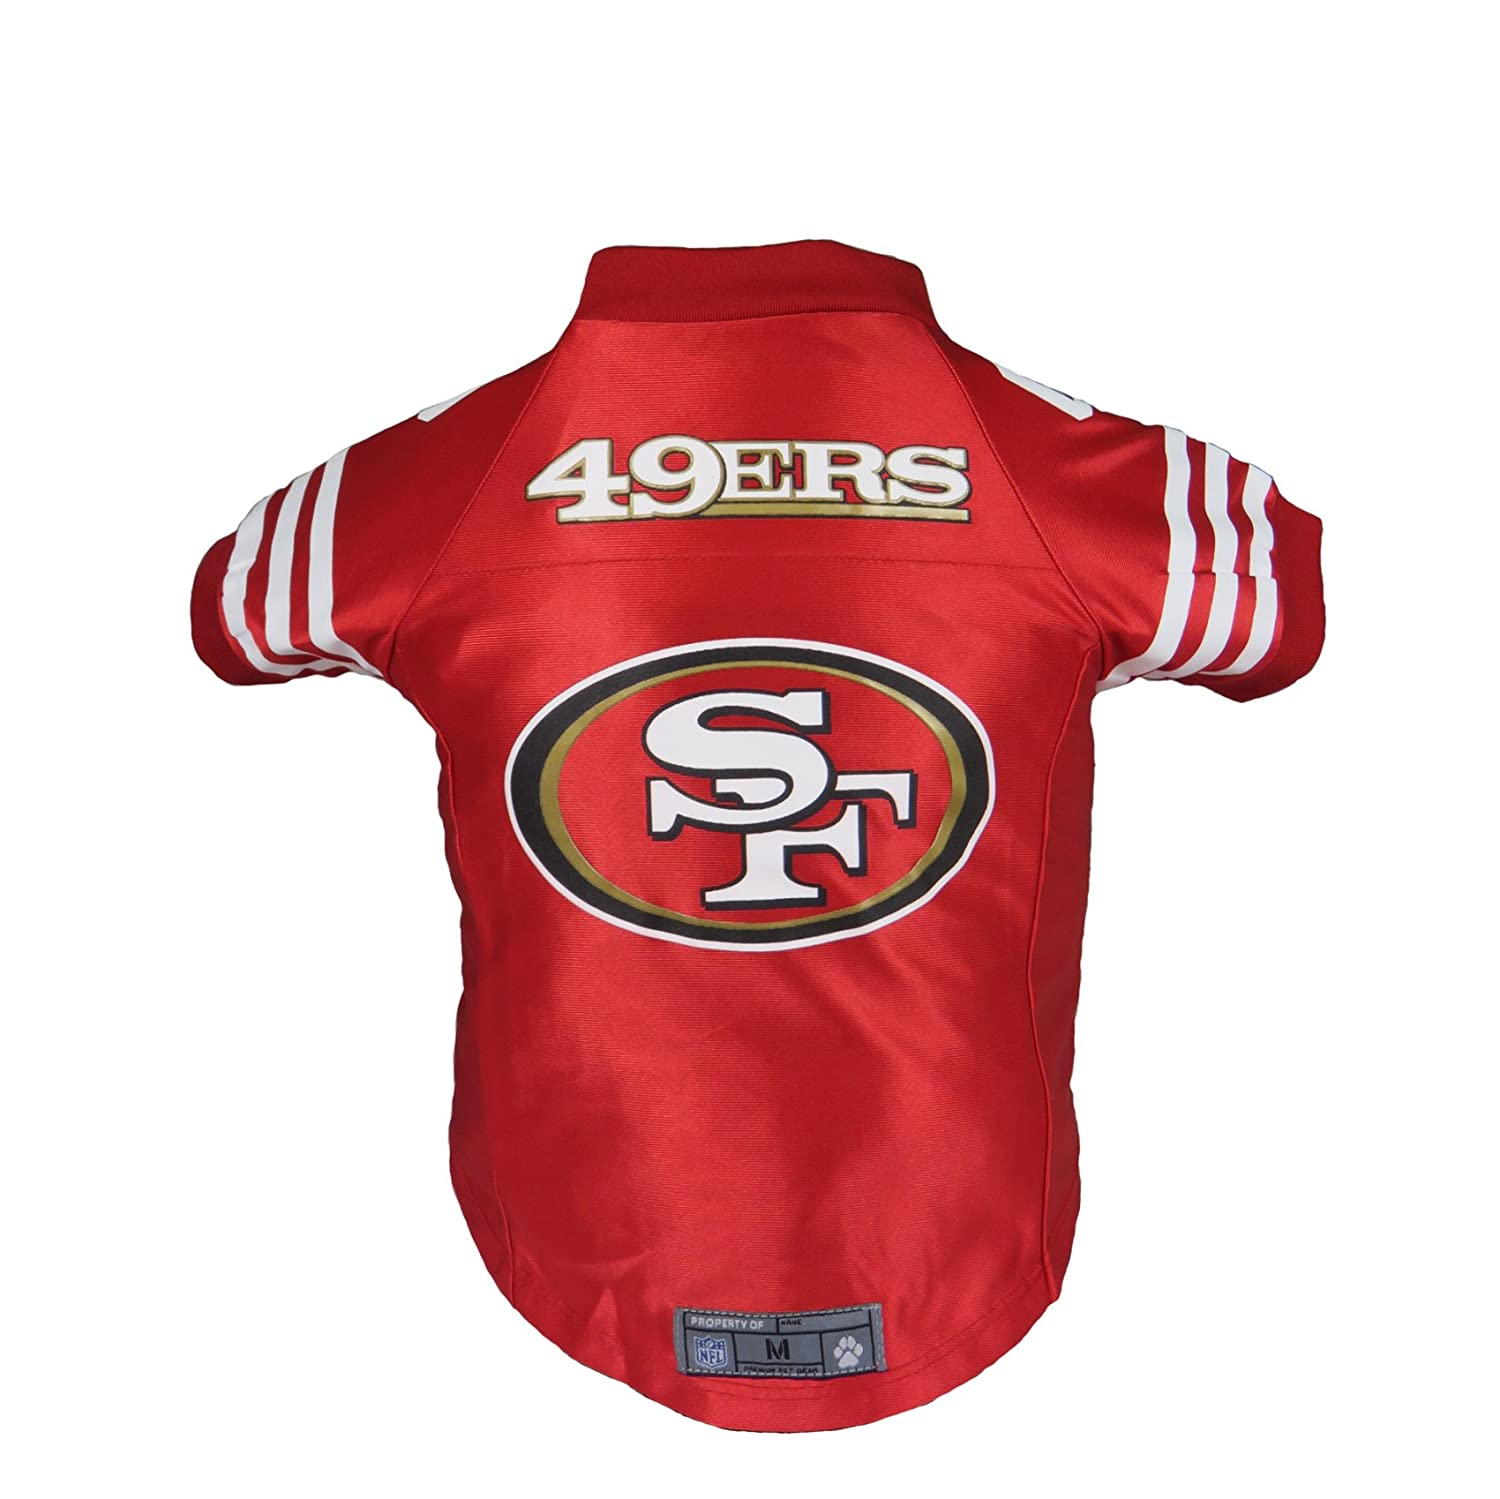 e18b9226c3f Amazon.com : NFL Premium Pet Jersey : Sports & Outdoors